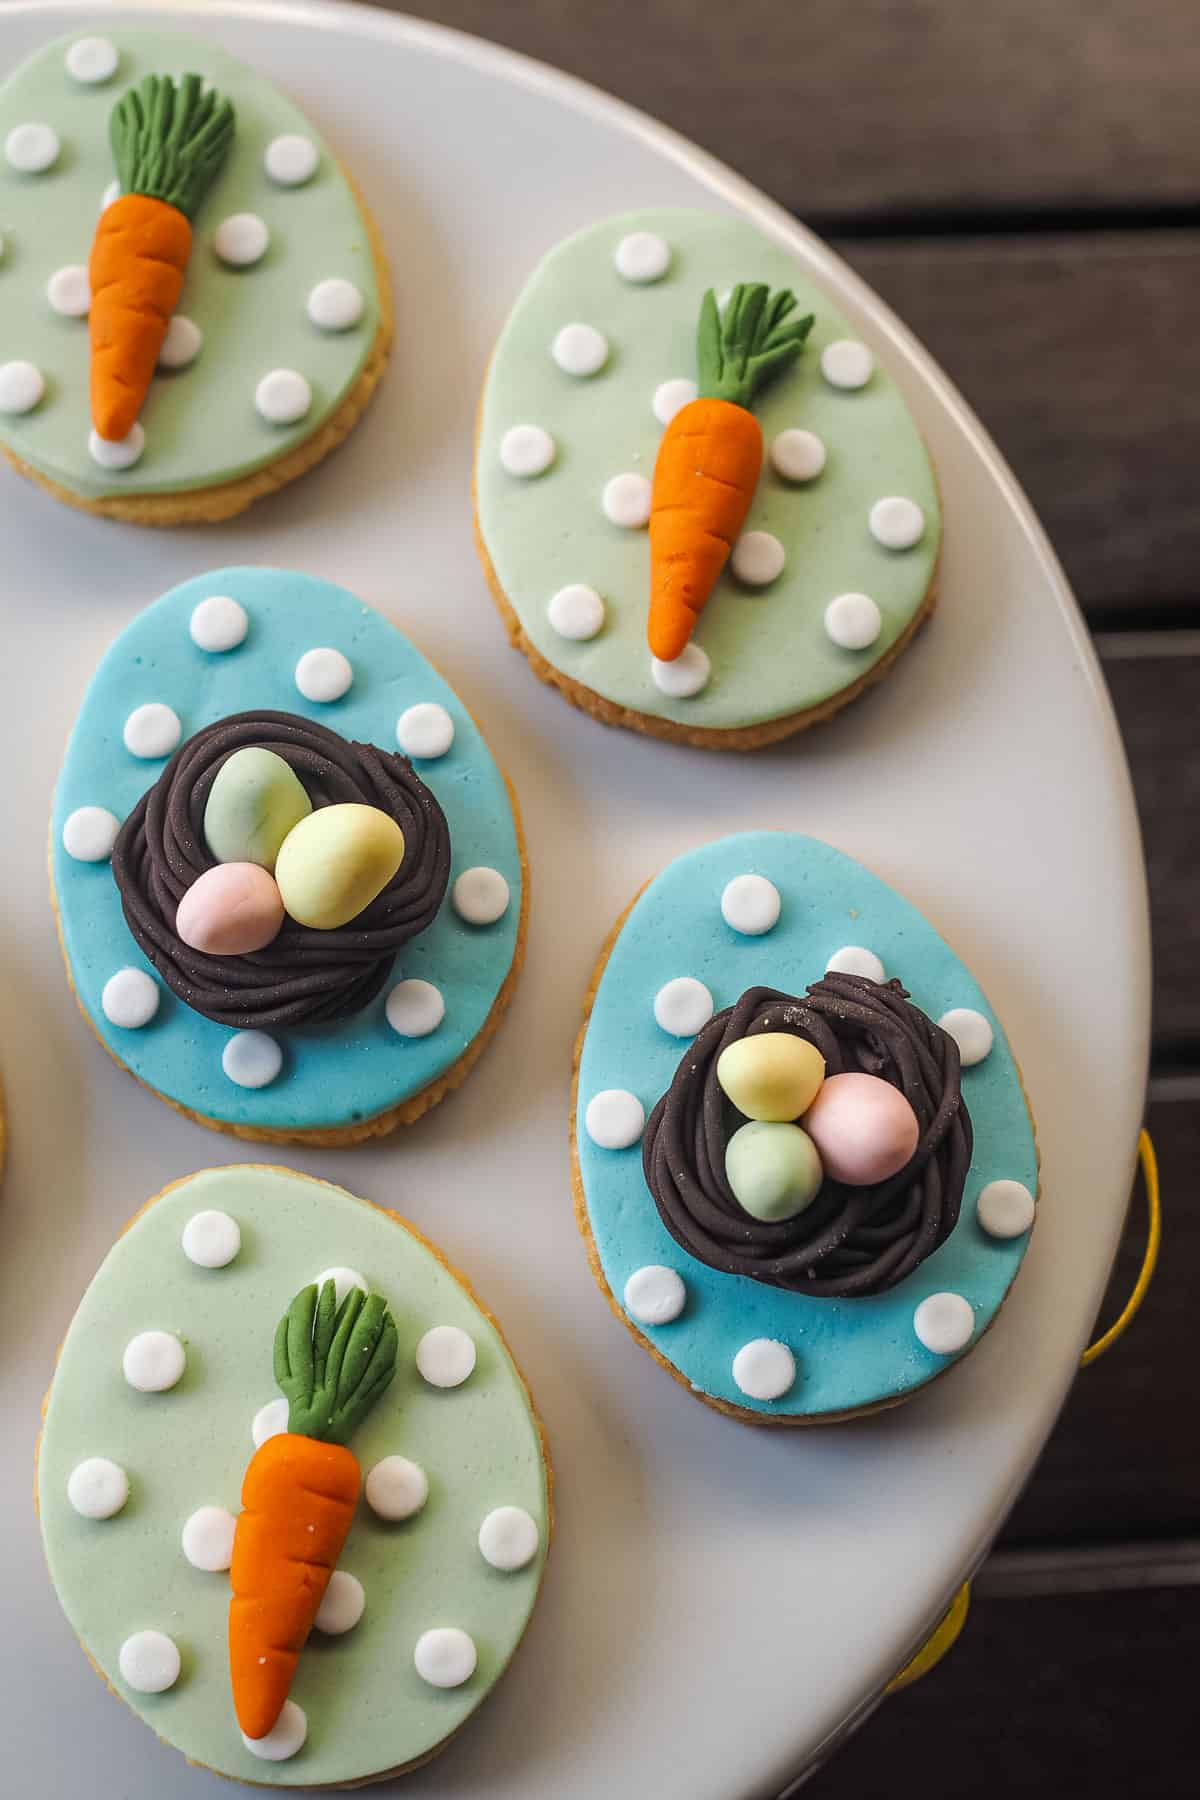 Egg shaped cookies in 2 design. First design with in blue background and white polka dots with 3D bird nest and 3 pastel green, pink and yellow fondant eggs in. The second design is green background with white polka dots and fondant carrot.